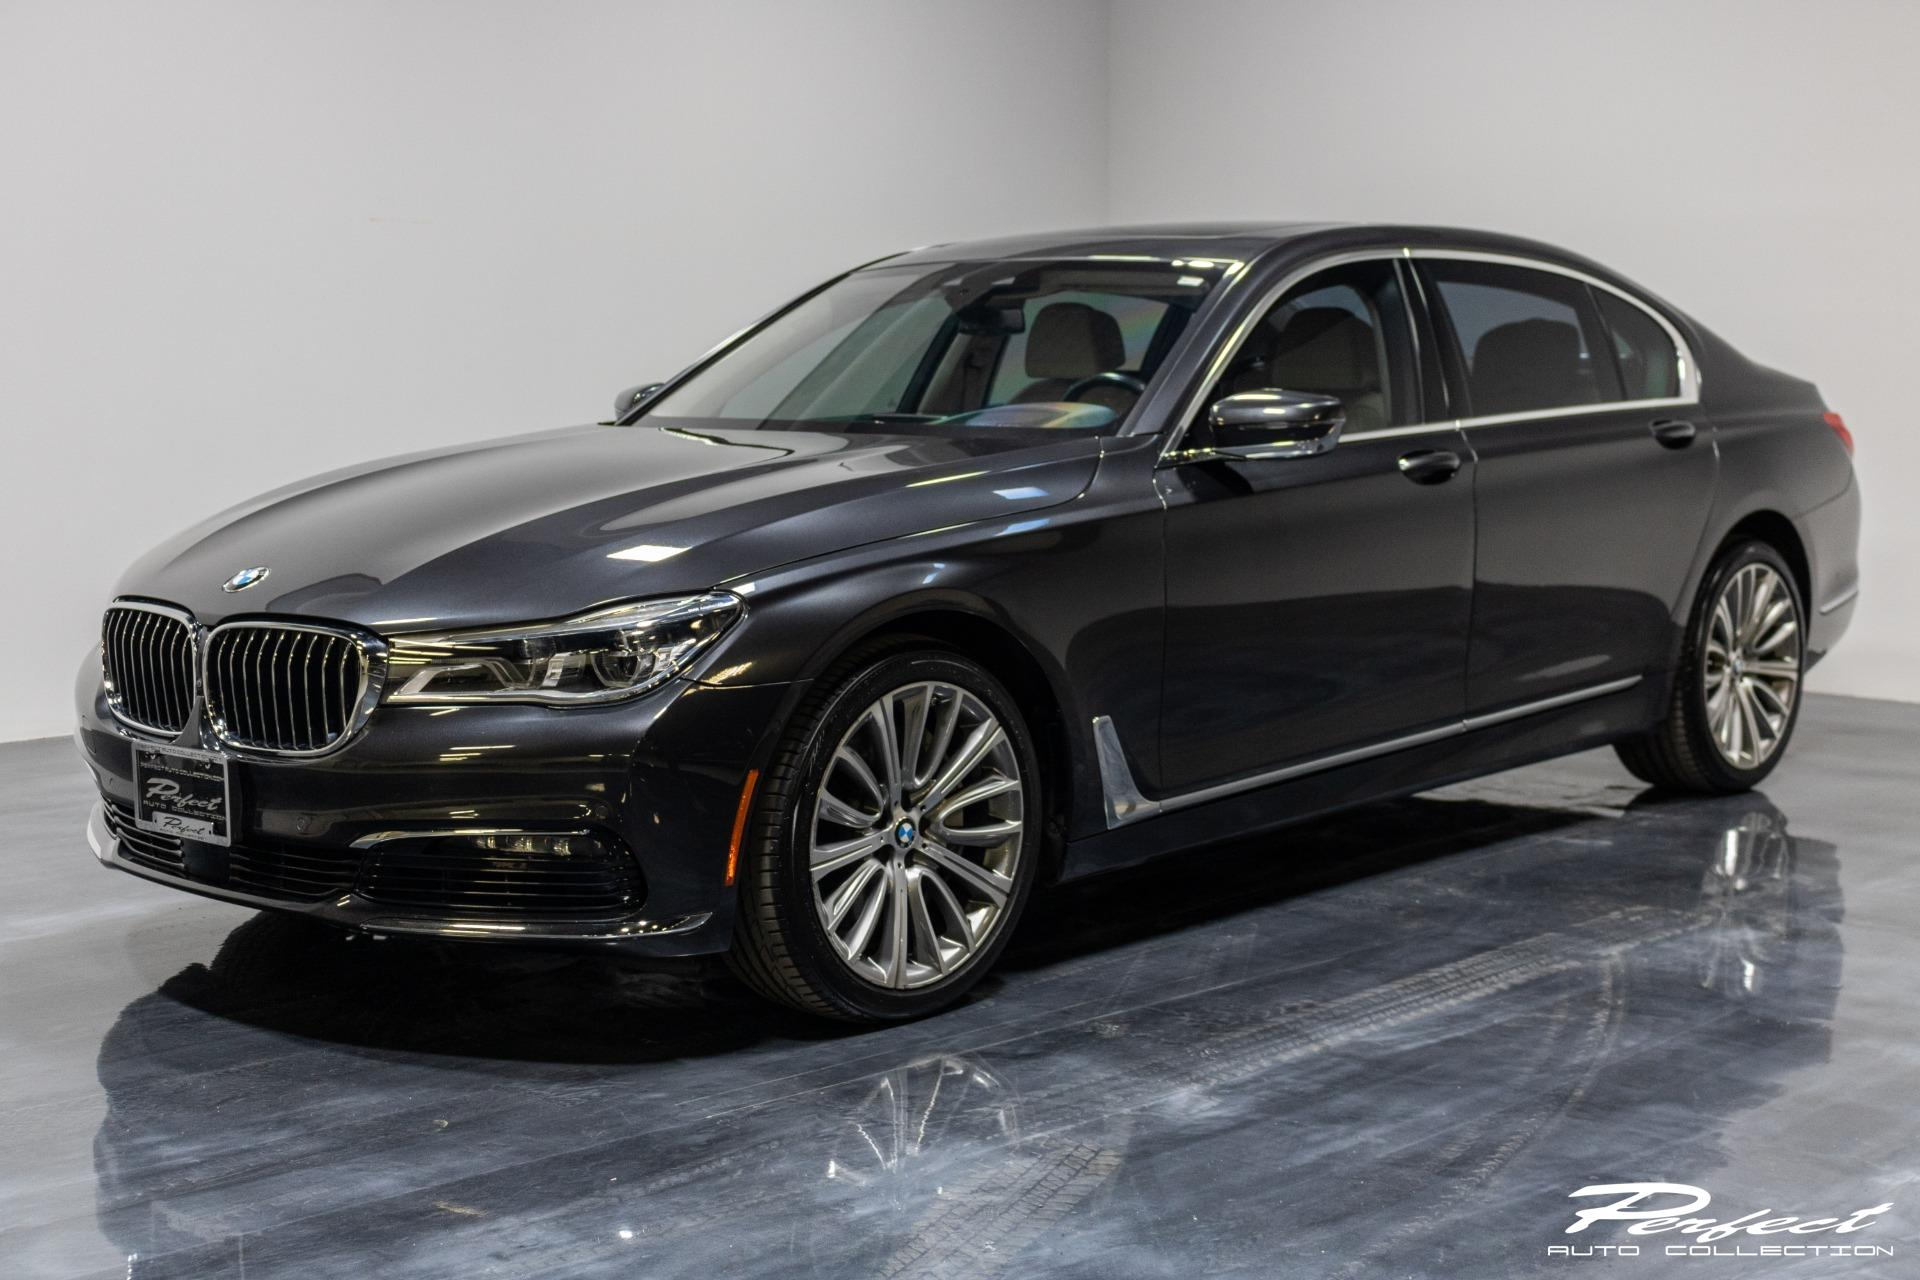 Used 2016 BMW 7 Series 750i xDrive for sale Sold at Perfect Auto Collection in Akron OH 44310 1